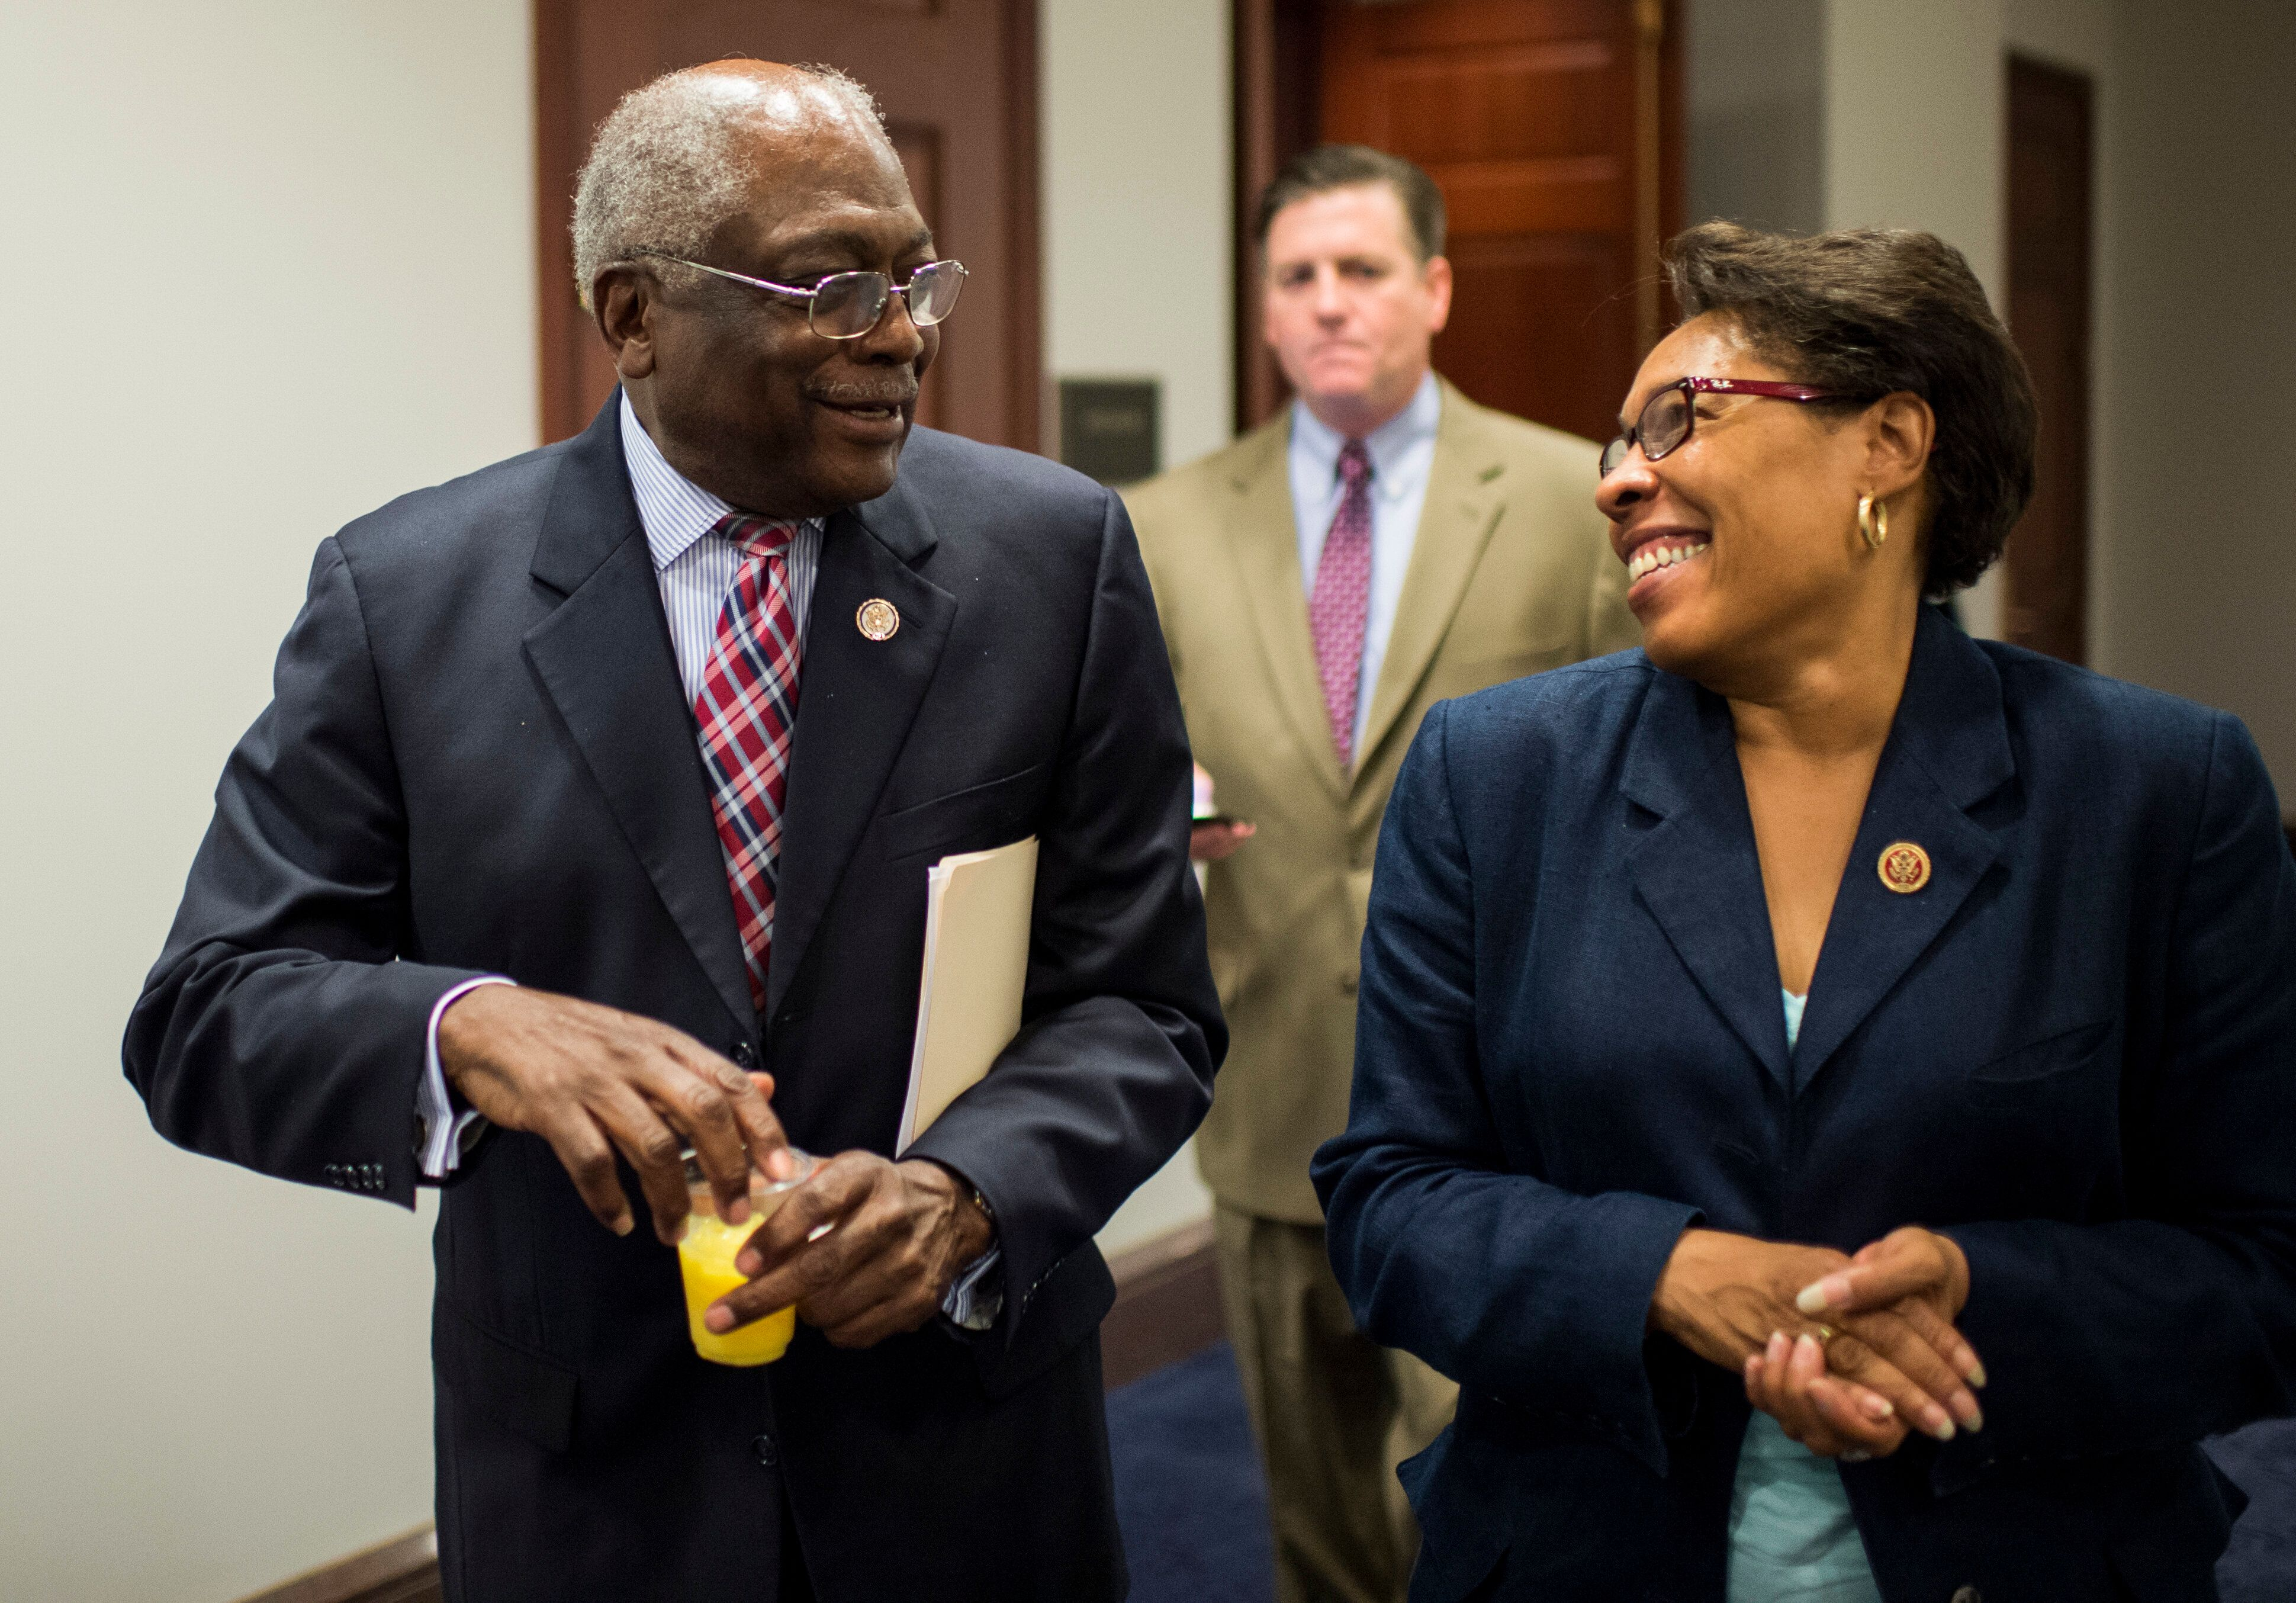 Rep. Jim Clyburn (D-S.C.), left, chats with then-Rep. Marcia Fudge (D-Ohio) in 2013. Clyburn has taken a keen interest in the